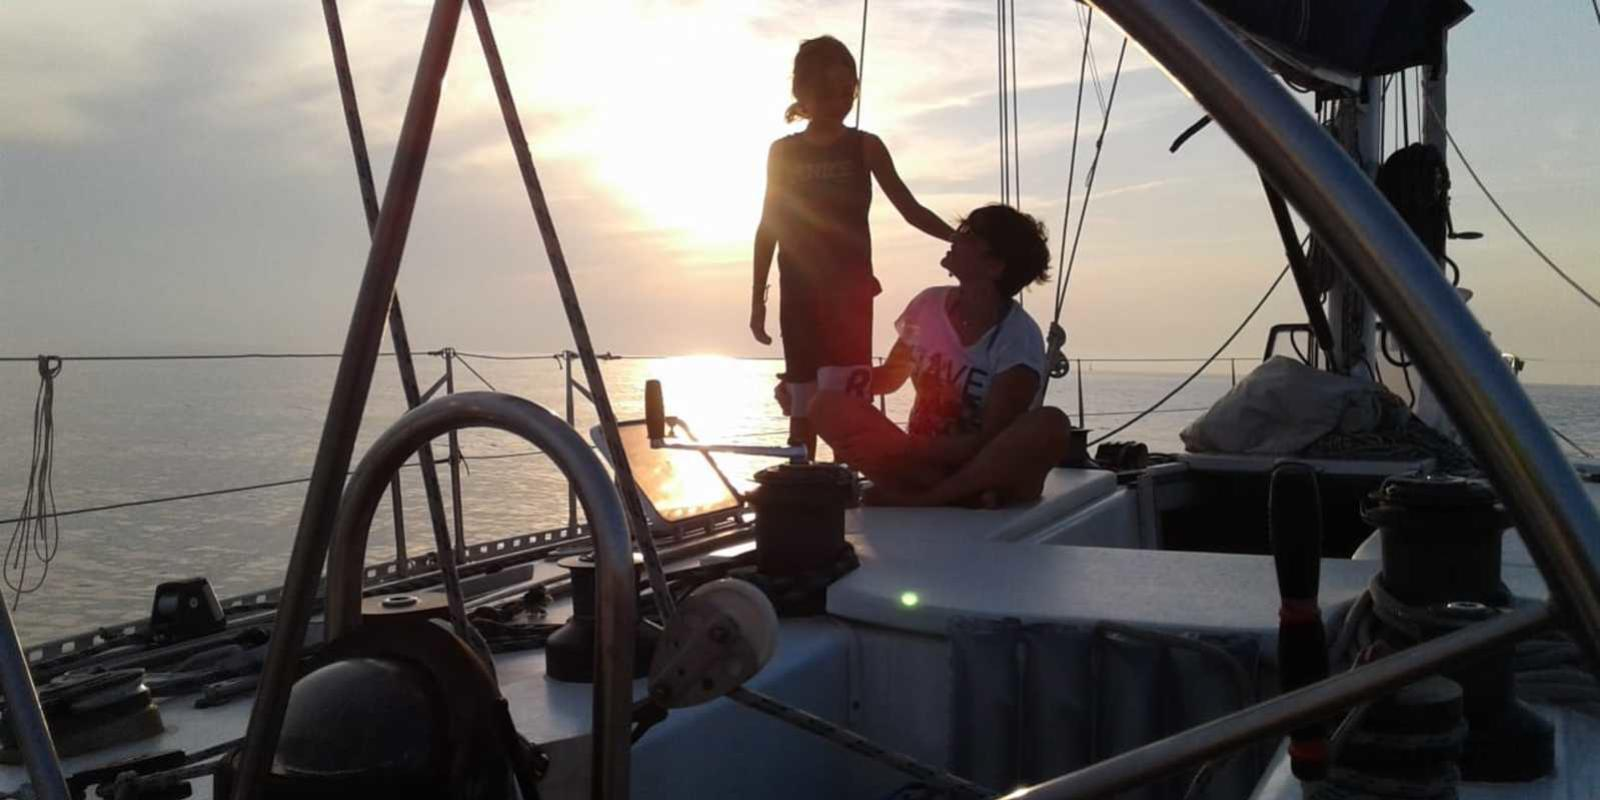 Sailing in the great history along the coasts of Epirus. Hostess on board.